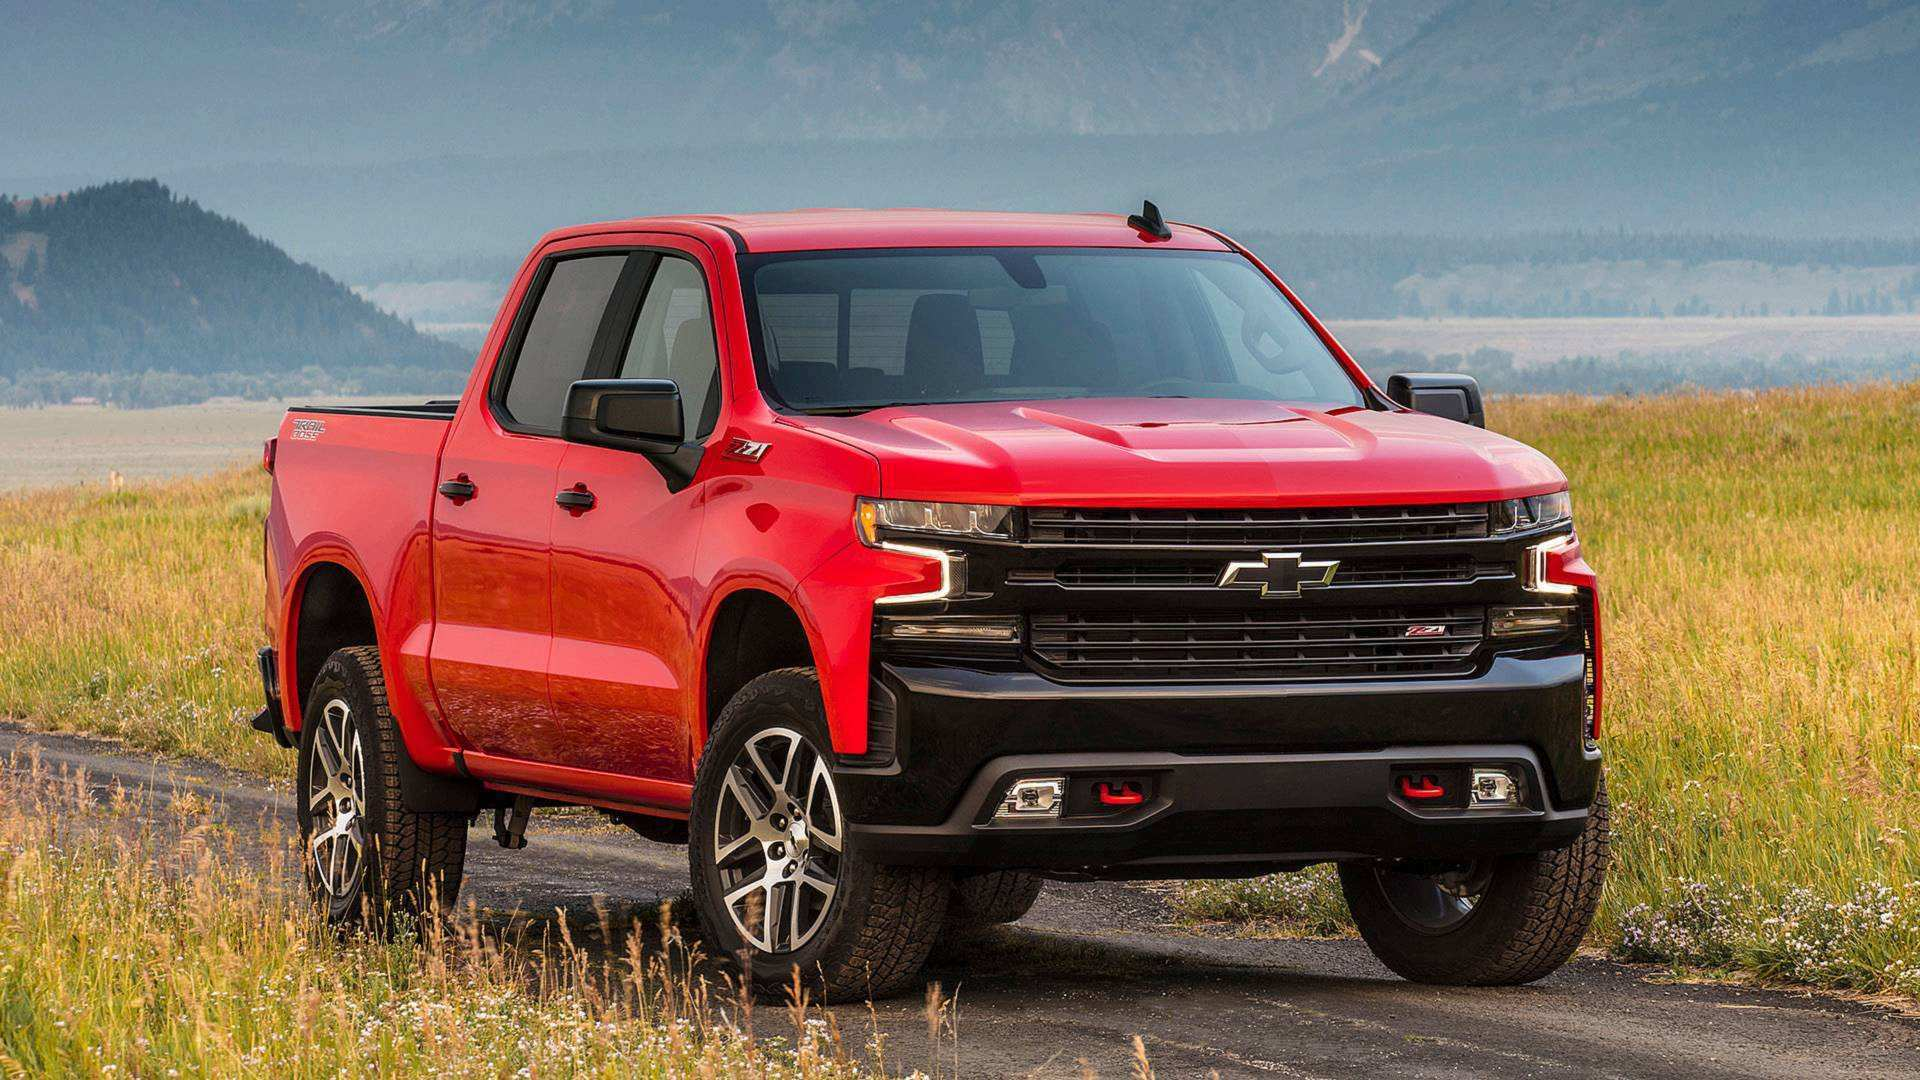 47 New 2019 Chevy Silverado Price Design And Review